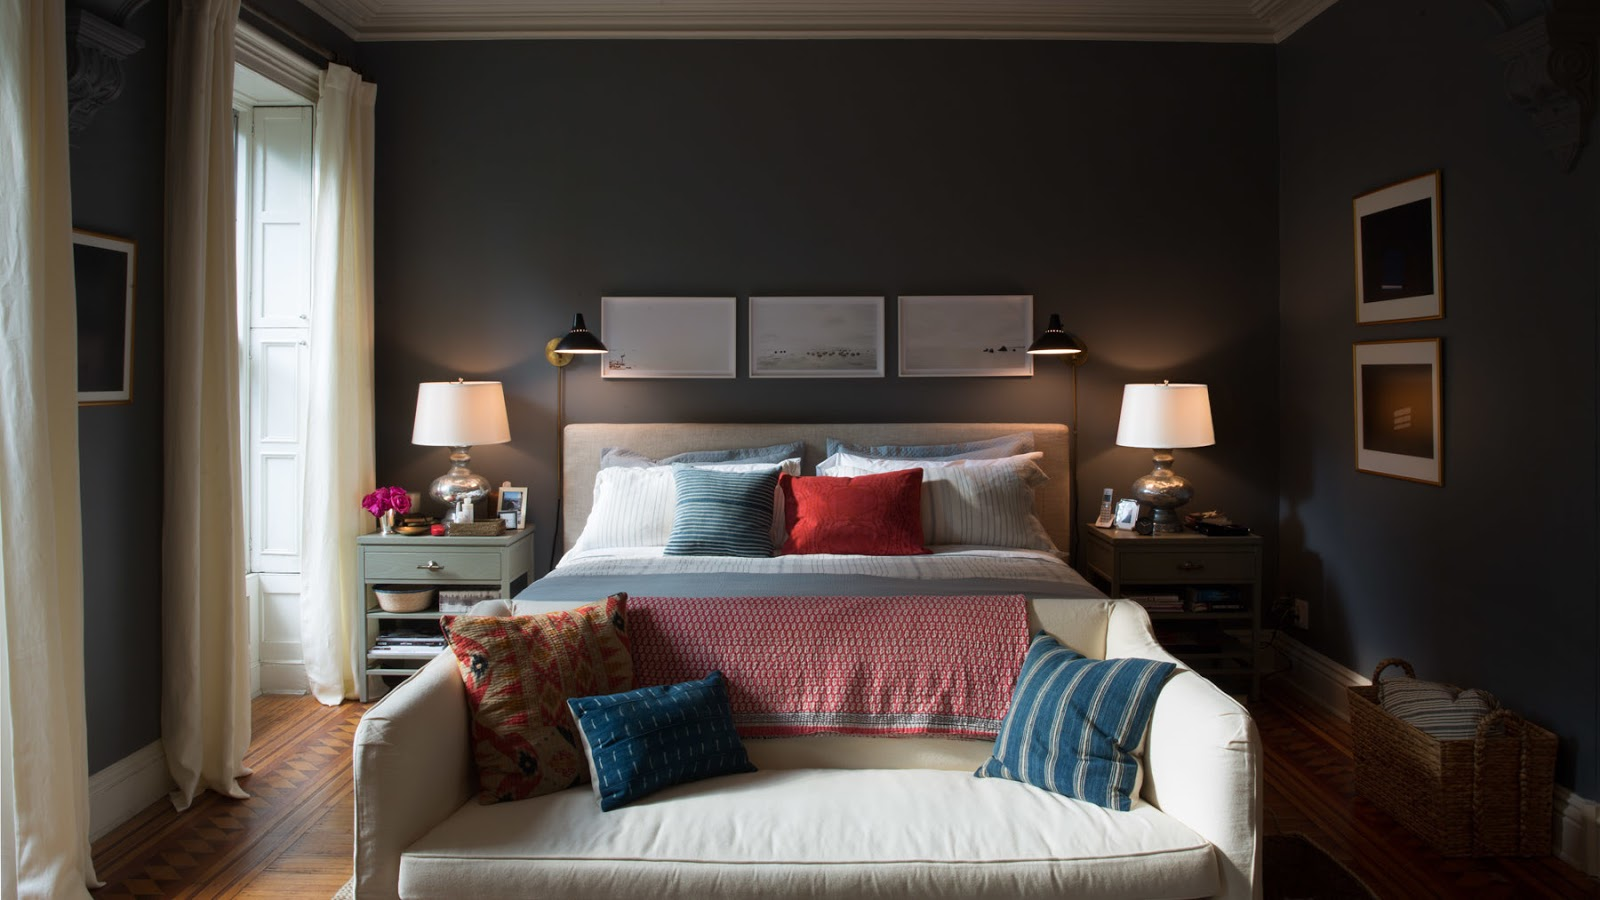 Interior design for my home - Jules S Bedroom In The Intern Designed By Nancy Meyers Via Architectural Digest